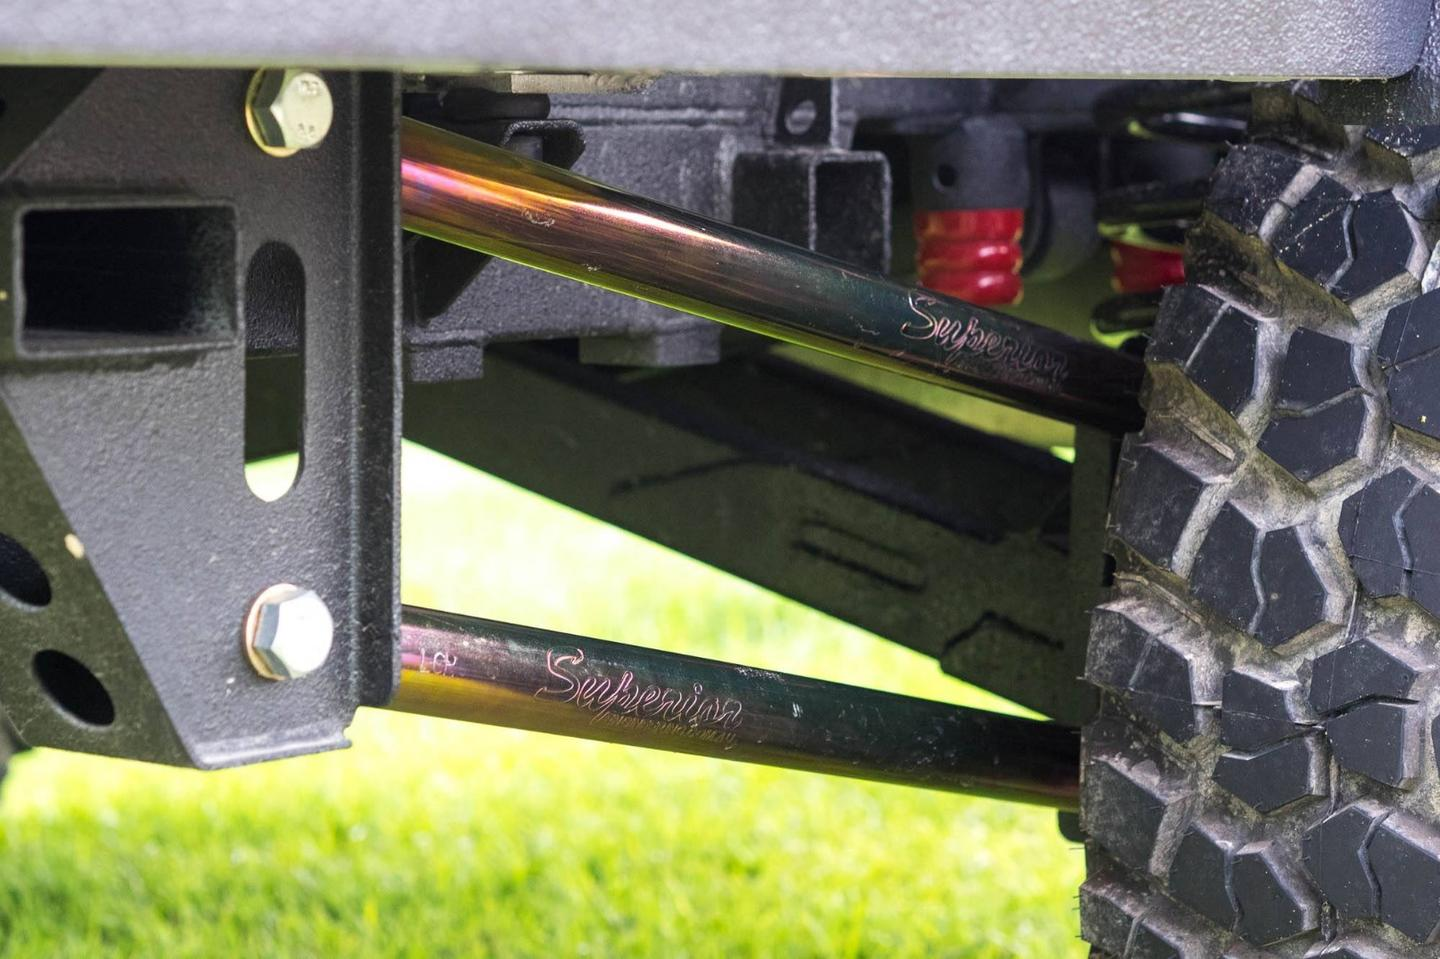 Terra Trek cushions the TTEwith a long-travelindependent suspension